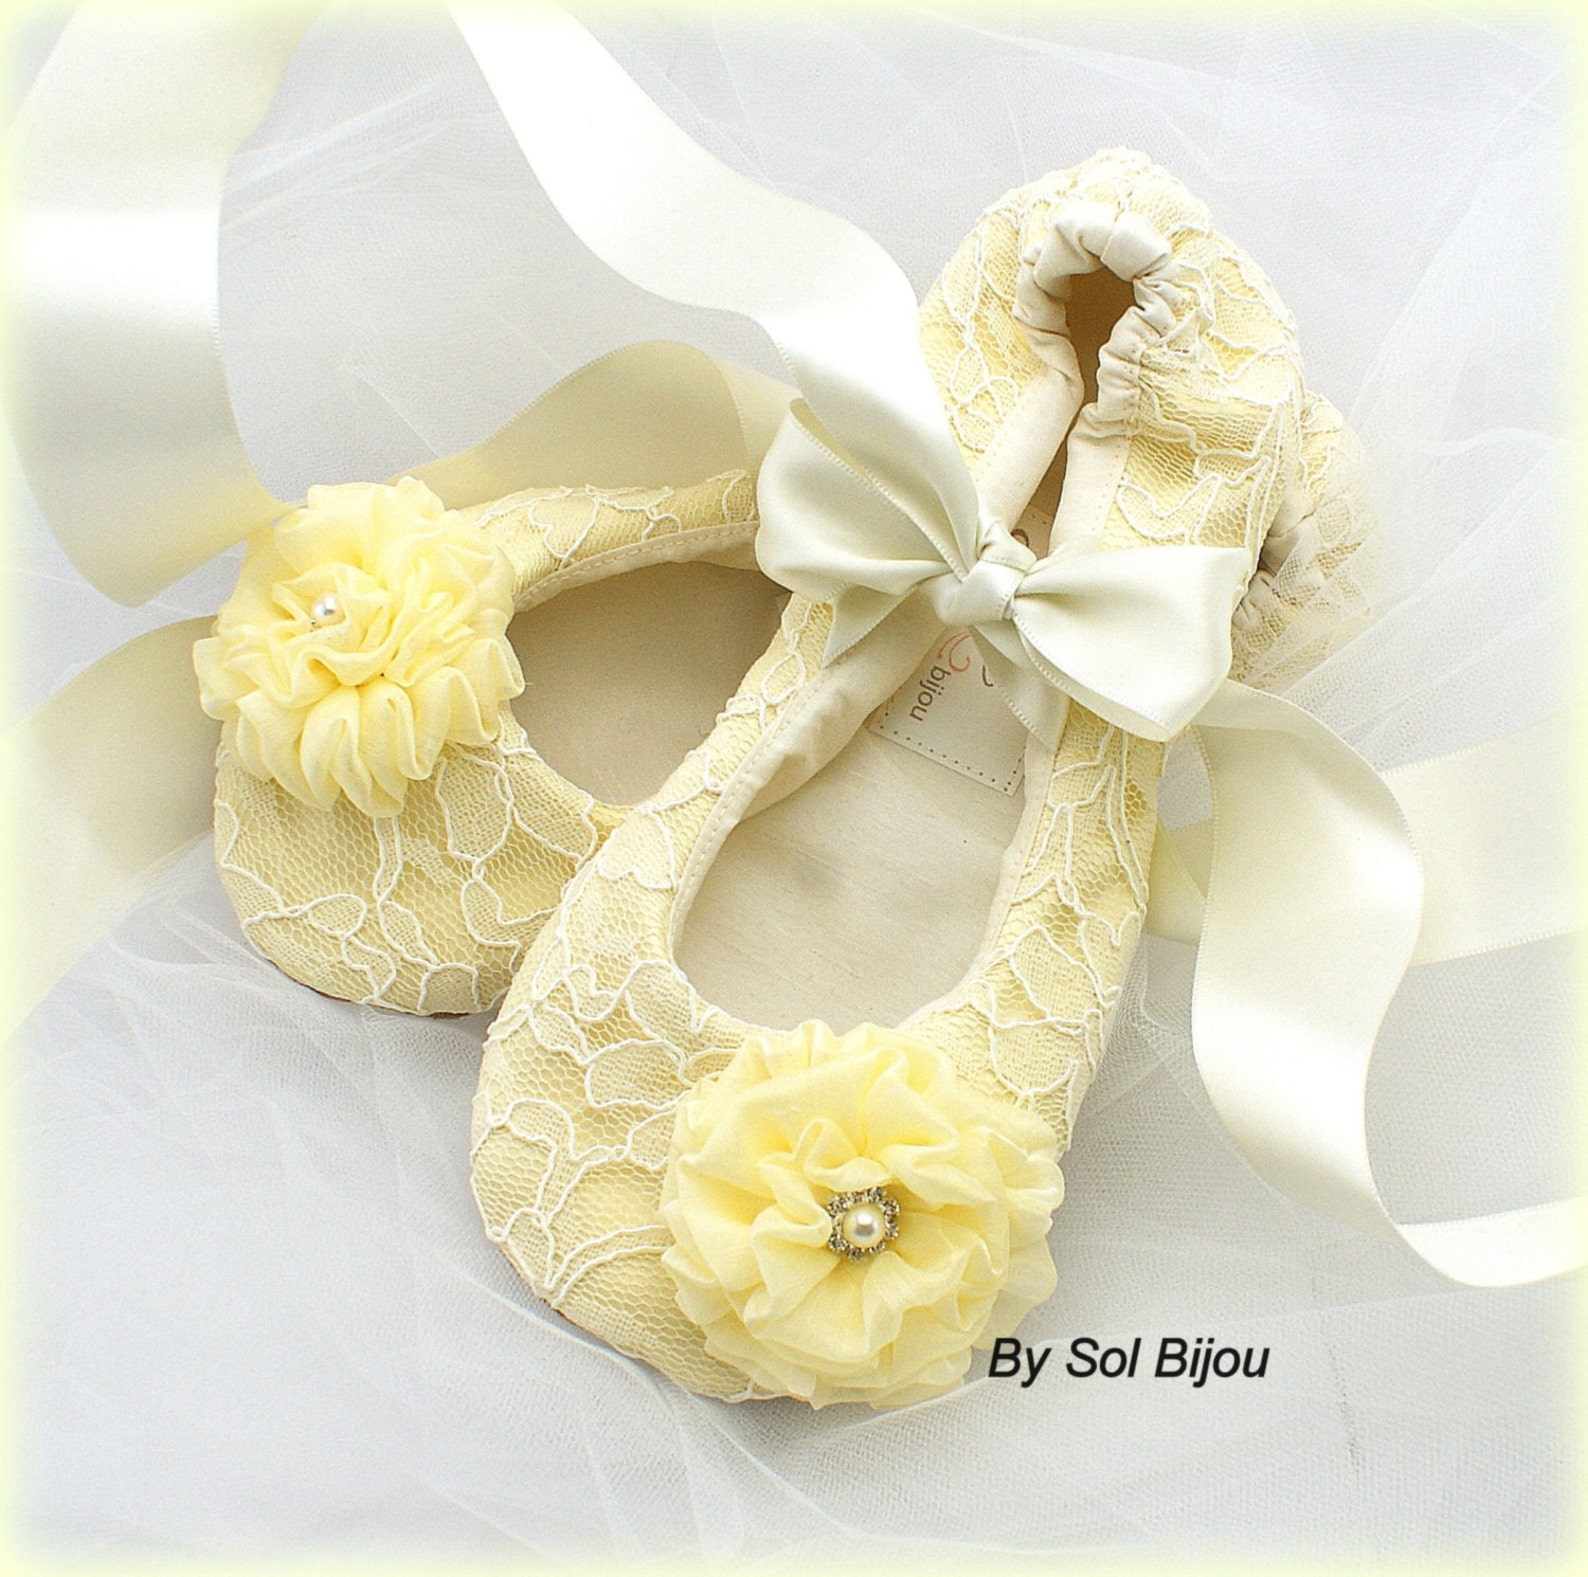 ballet flats, yellow, ivory flats, ballet slippers, satin ballet flats, wedding flats ,elegant wedding, maid of honor, flower gi